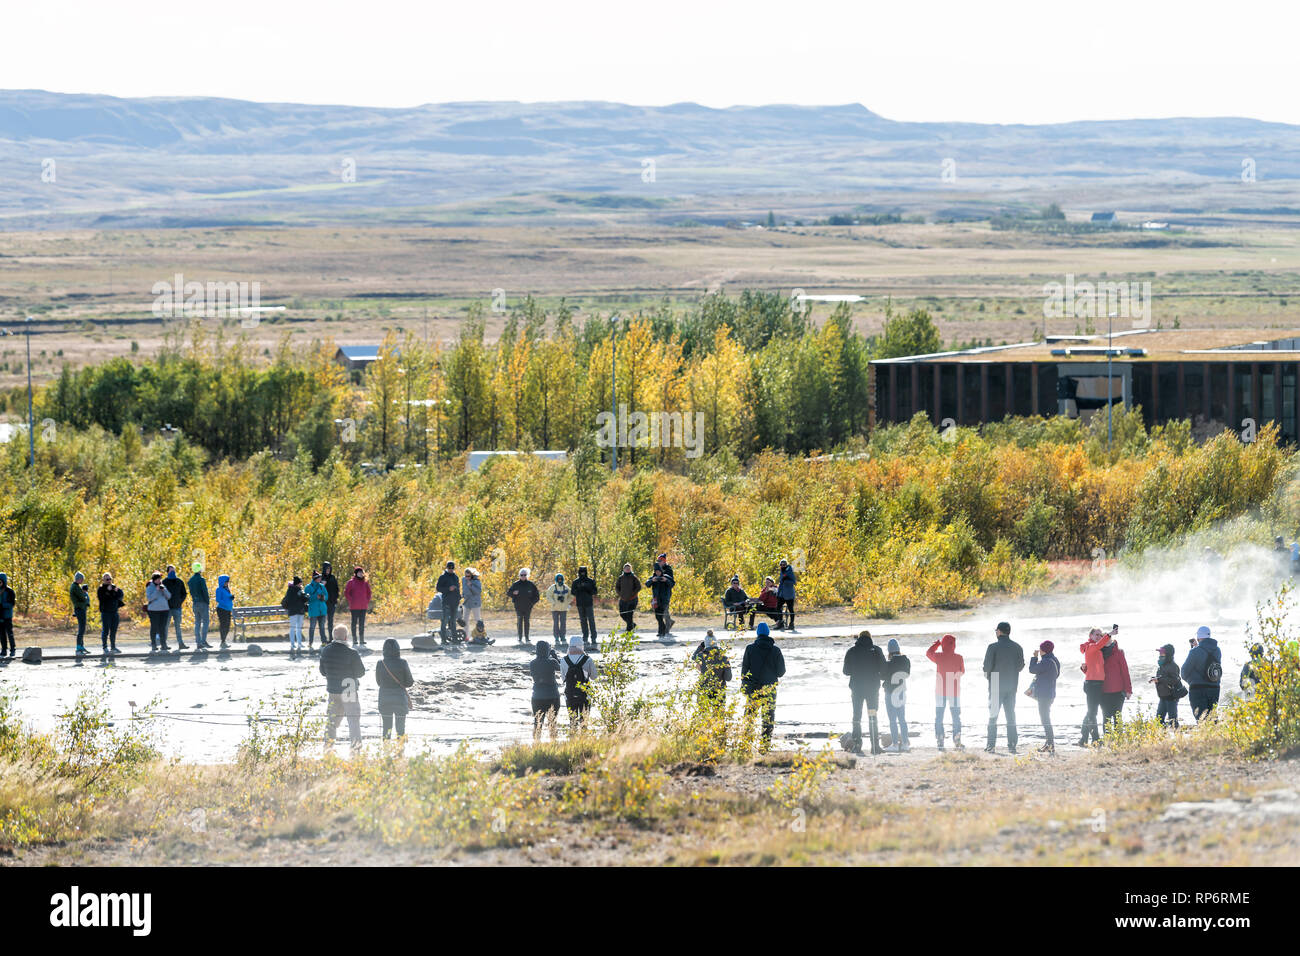 Haukadalur Valley, Iceland - September 19, 2018: Geyser landscape with people tourists waiting by Strokkur Geysir Hot Springs eruption on Golden Circl Stock Photo